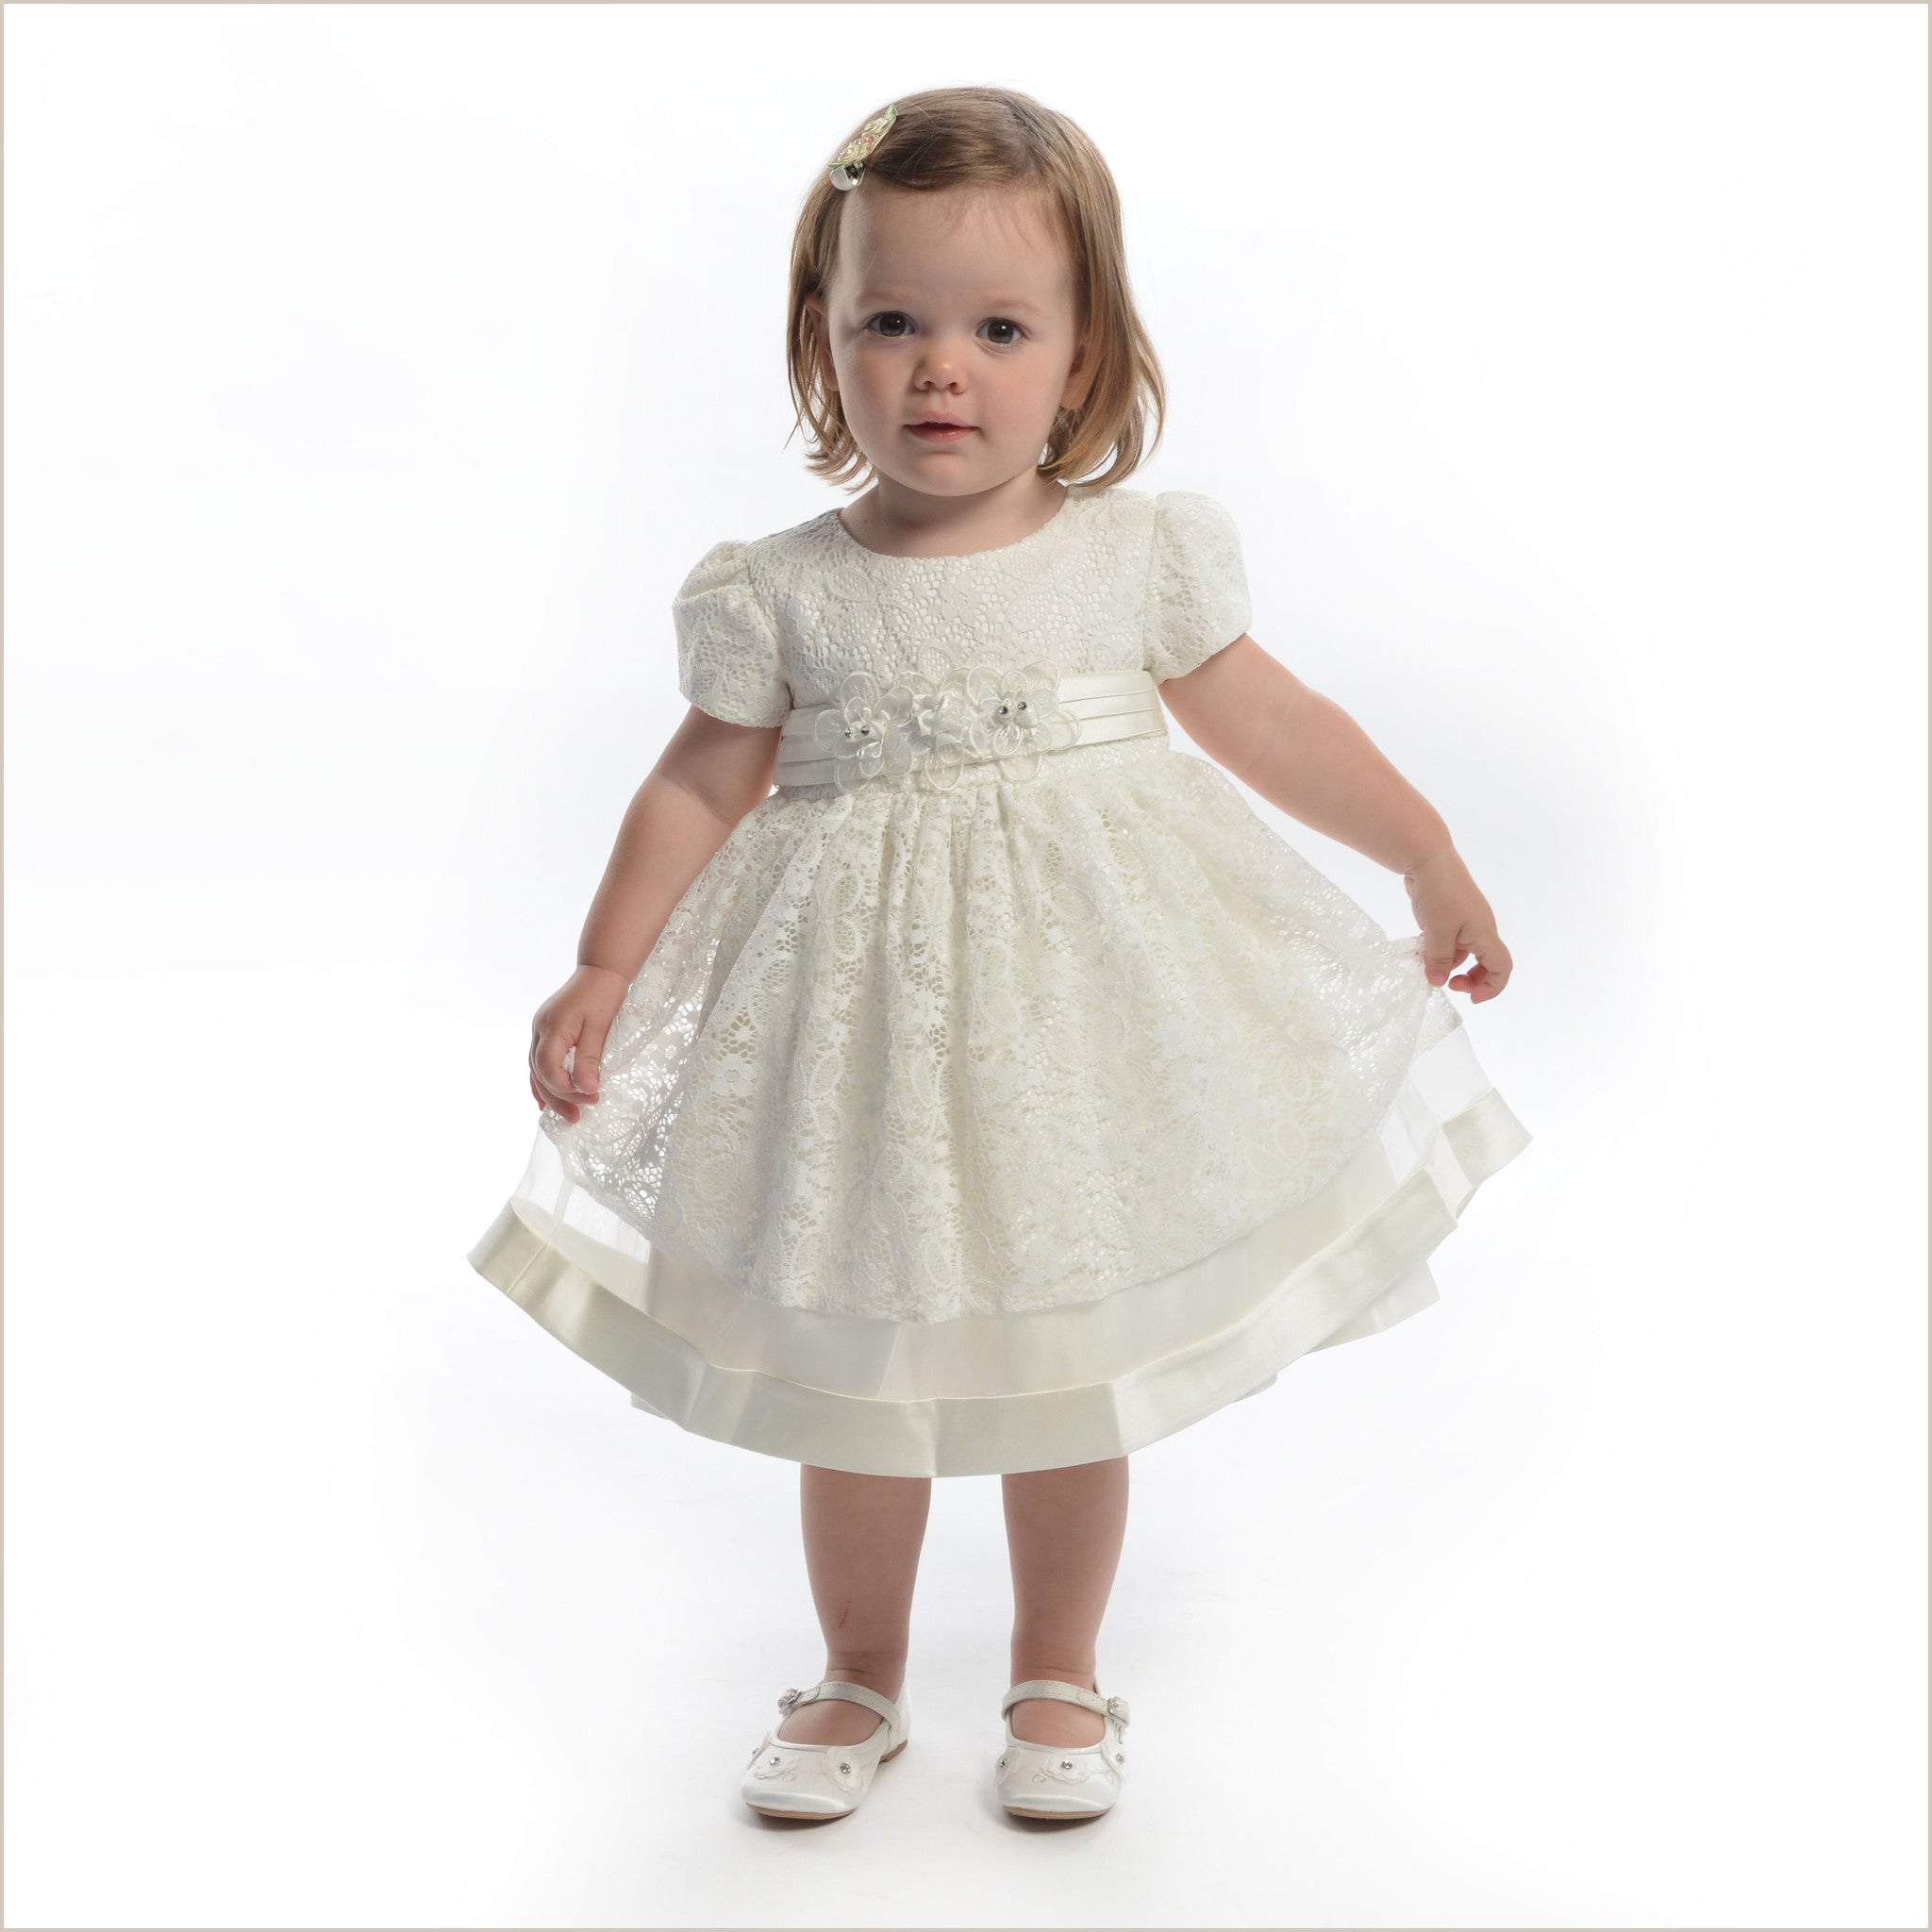 111e9c1540a Baby Flower Girl Dress in Ivory Lace also Toddler Girl Size Kathyrn